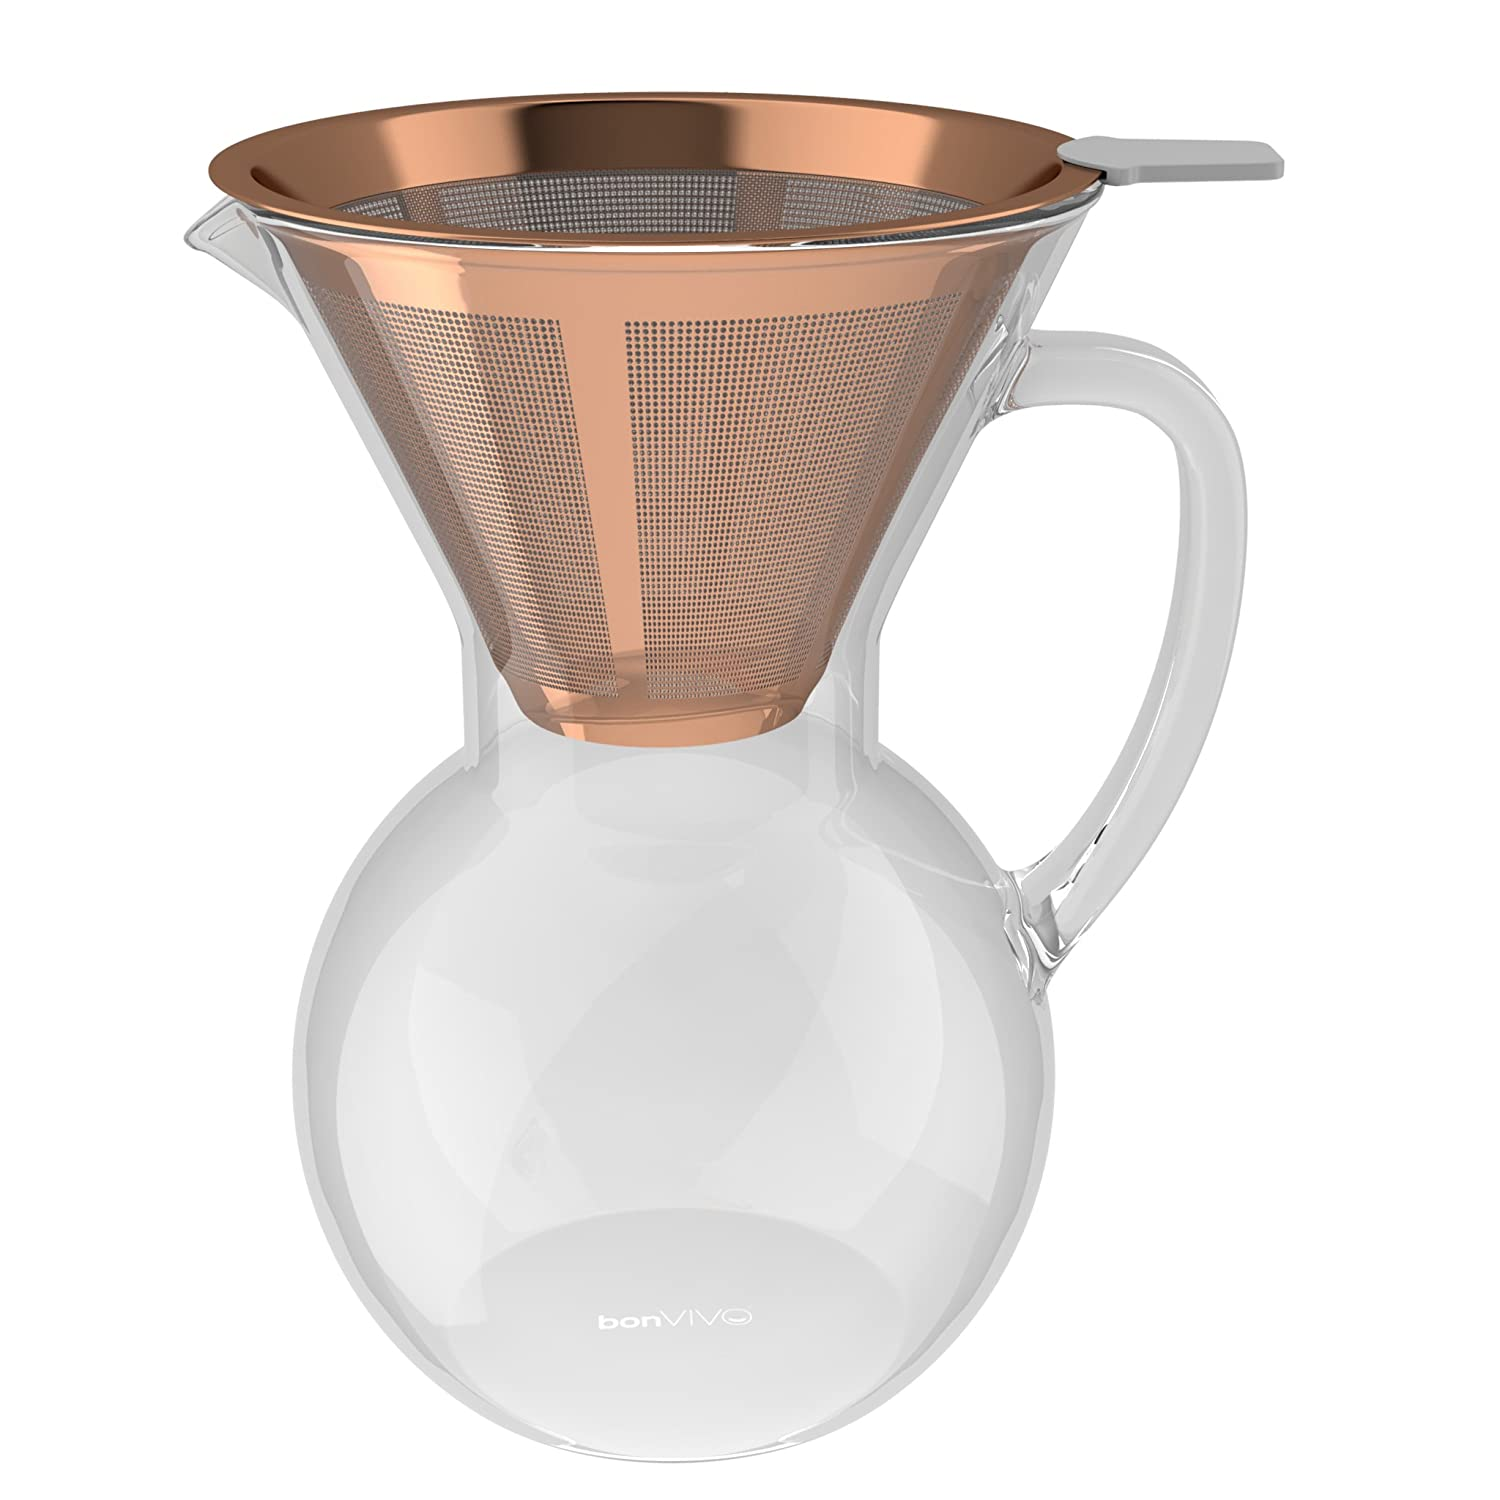 bonVIVO Aldrono Pour Over Coffee Machine, Filter Coffee Maker Reusable Coffee Filter Made Stainless Steel, Drip Coffee Maker Glass Jug Coffee Brewer Filter In Copper Finish, 500ml Bonstato